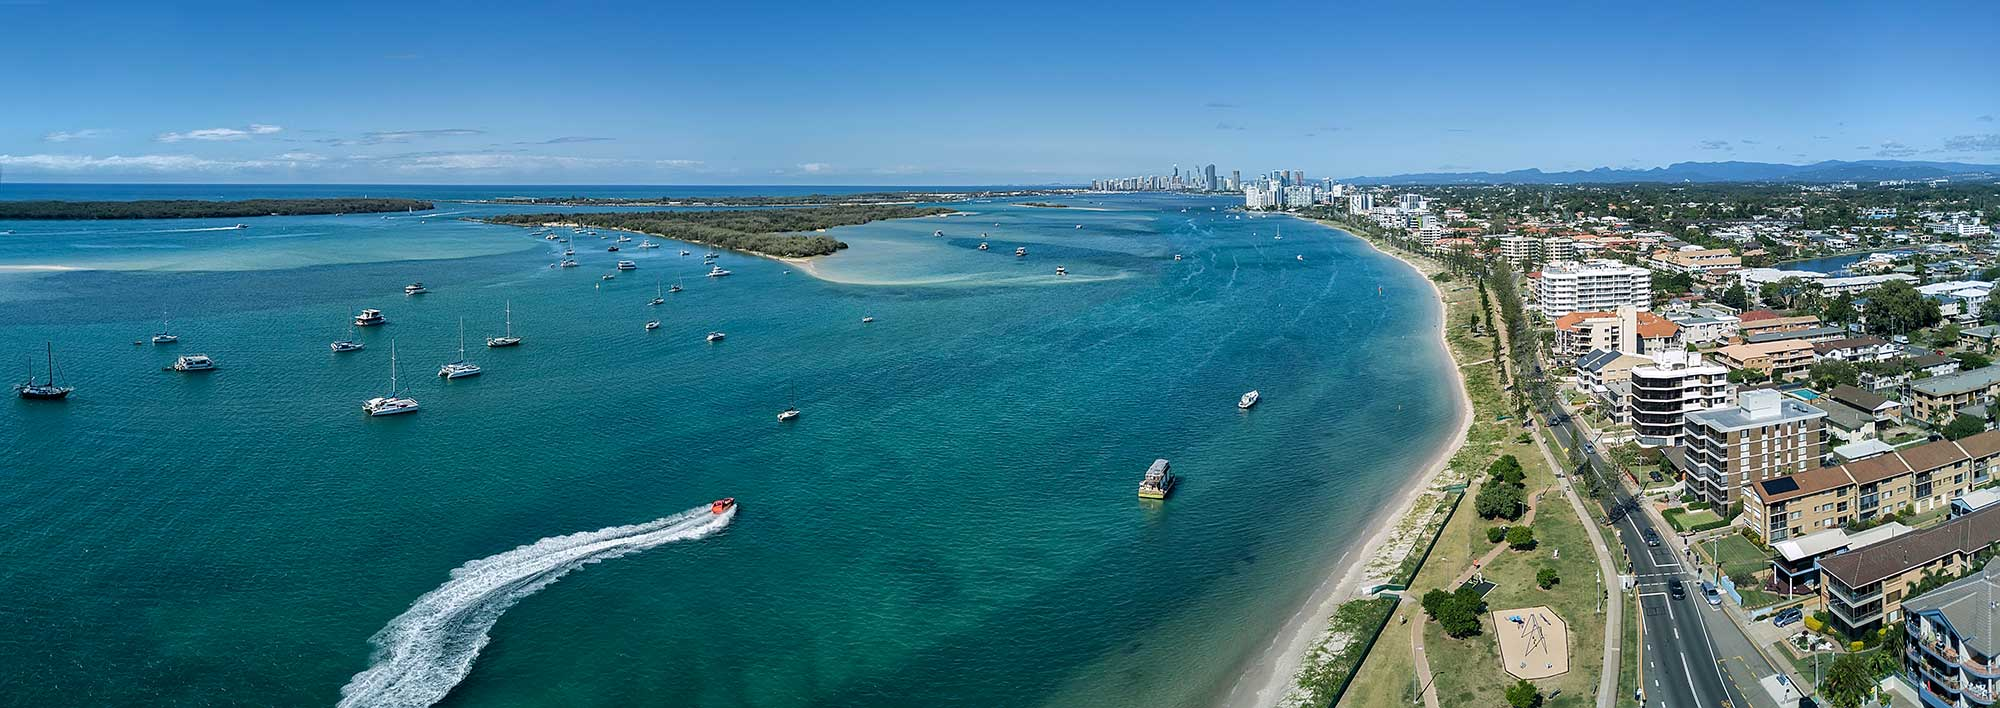 Gold Coast Broadwater aerial drone photography DroneAce